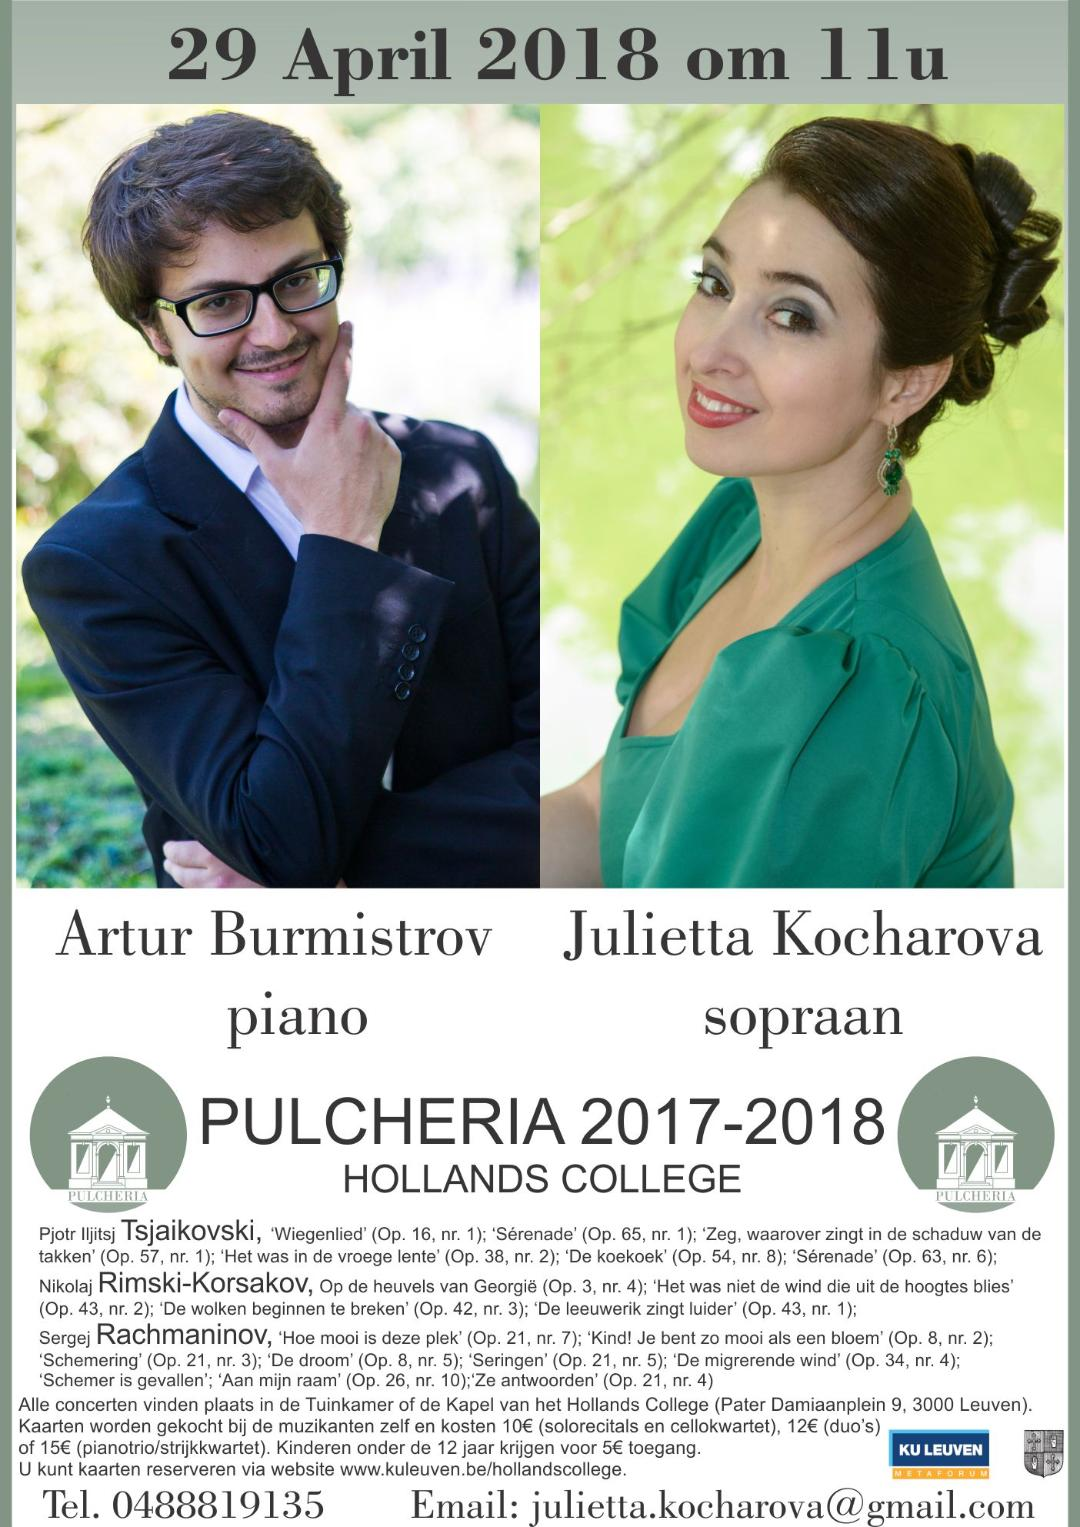 Affiche. Leuven. Romance is the soul of a Russian person. Artur Burmistrov (piano) and Julietta Kocharova (sopraan). 2018-04-29